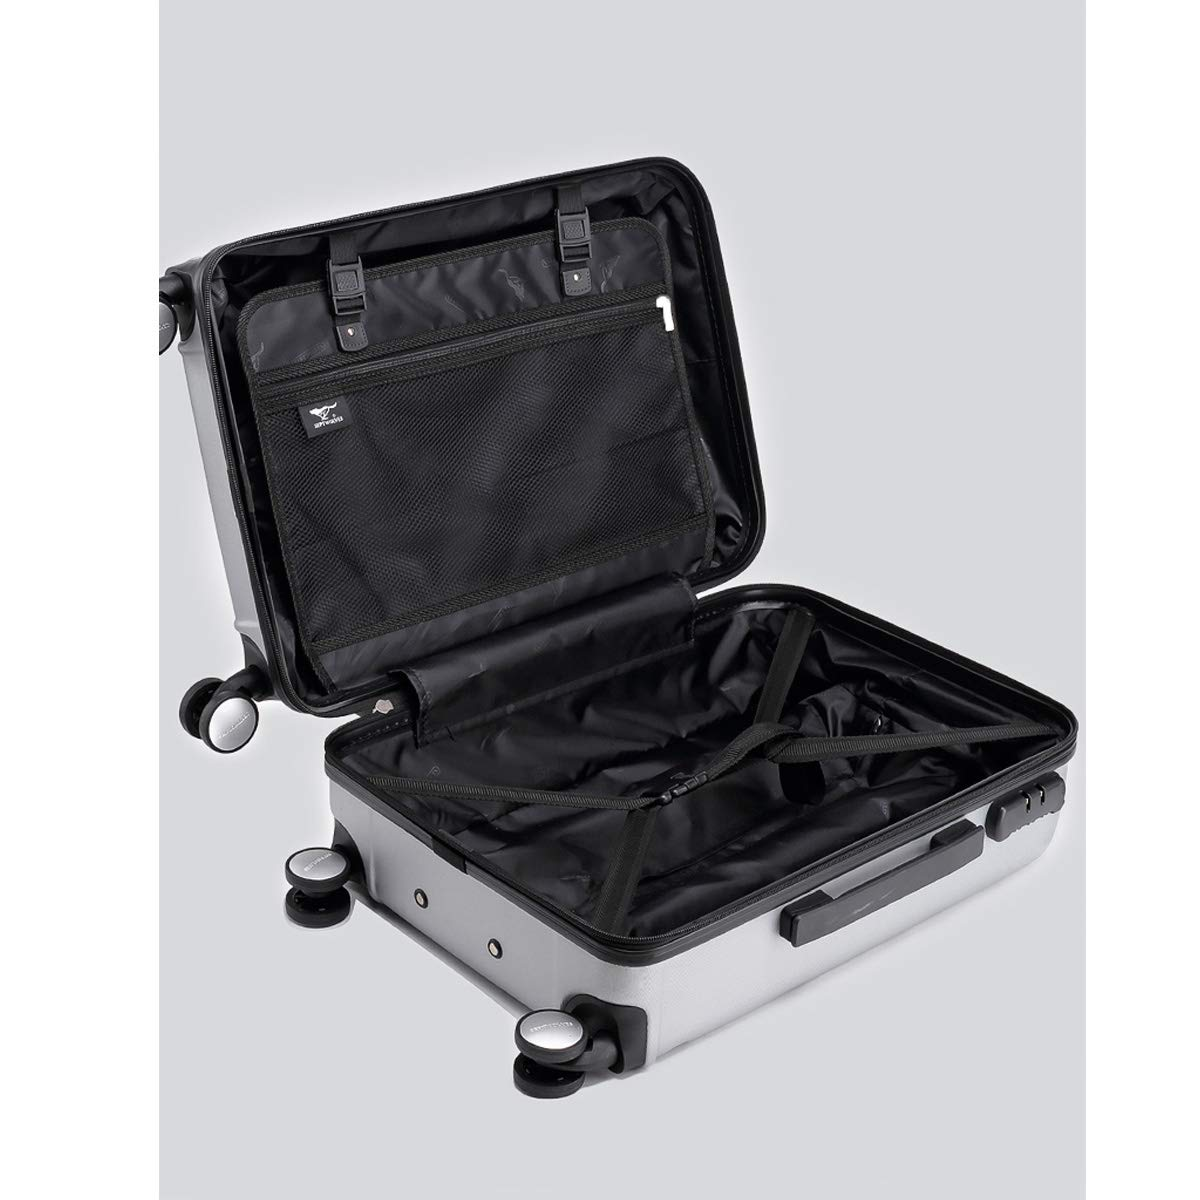 Simple Simple Travel Organizer Color : Black, Size : 24 Huijunwenti Soft Travel Bag 20//24 inch The Latest Style Trolley case